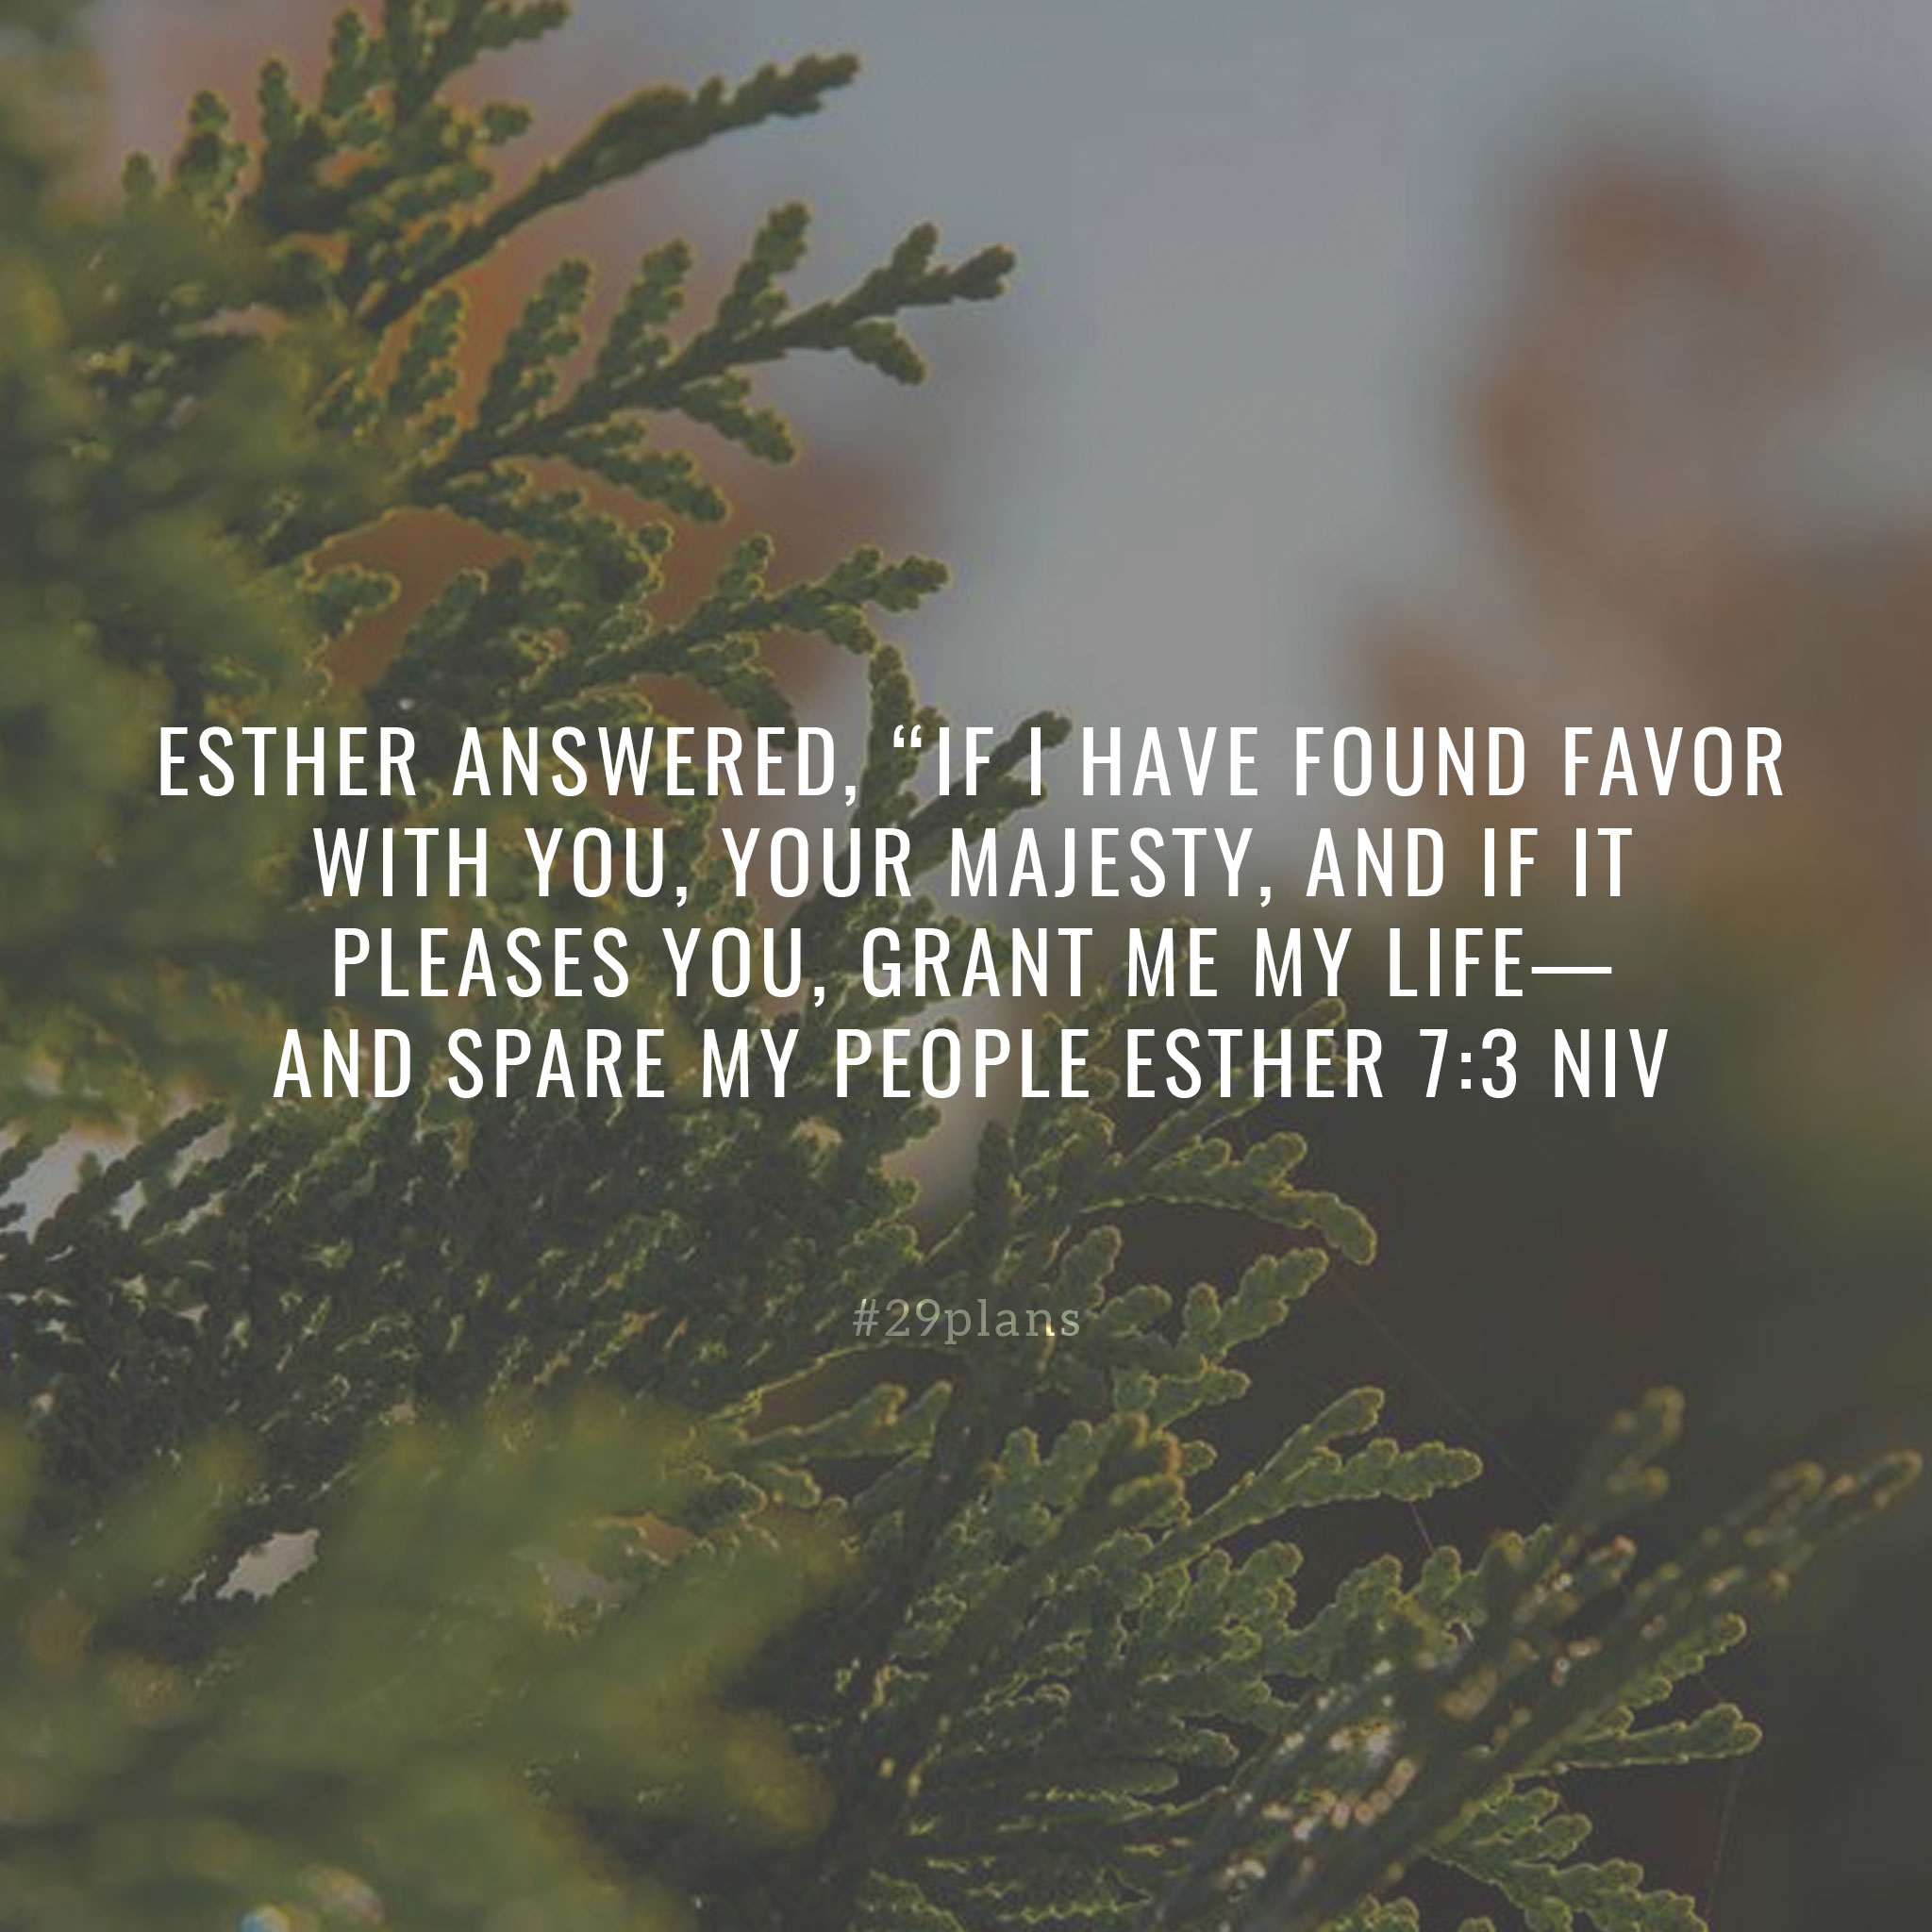 Today's Guide — 12.13.18 — Found Favor